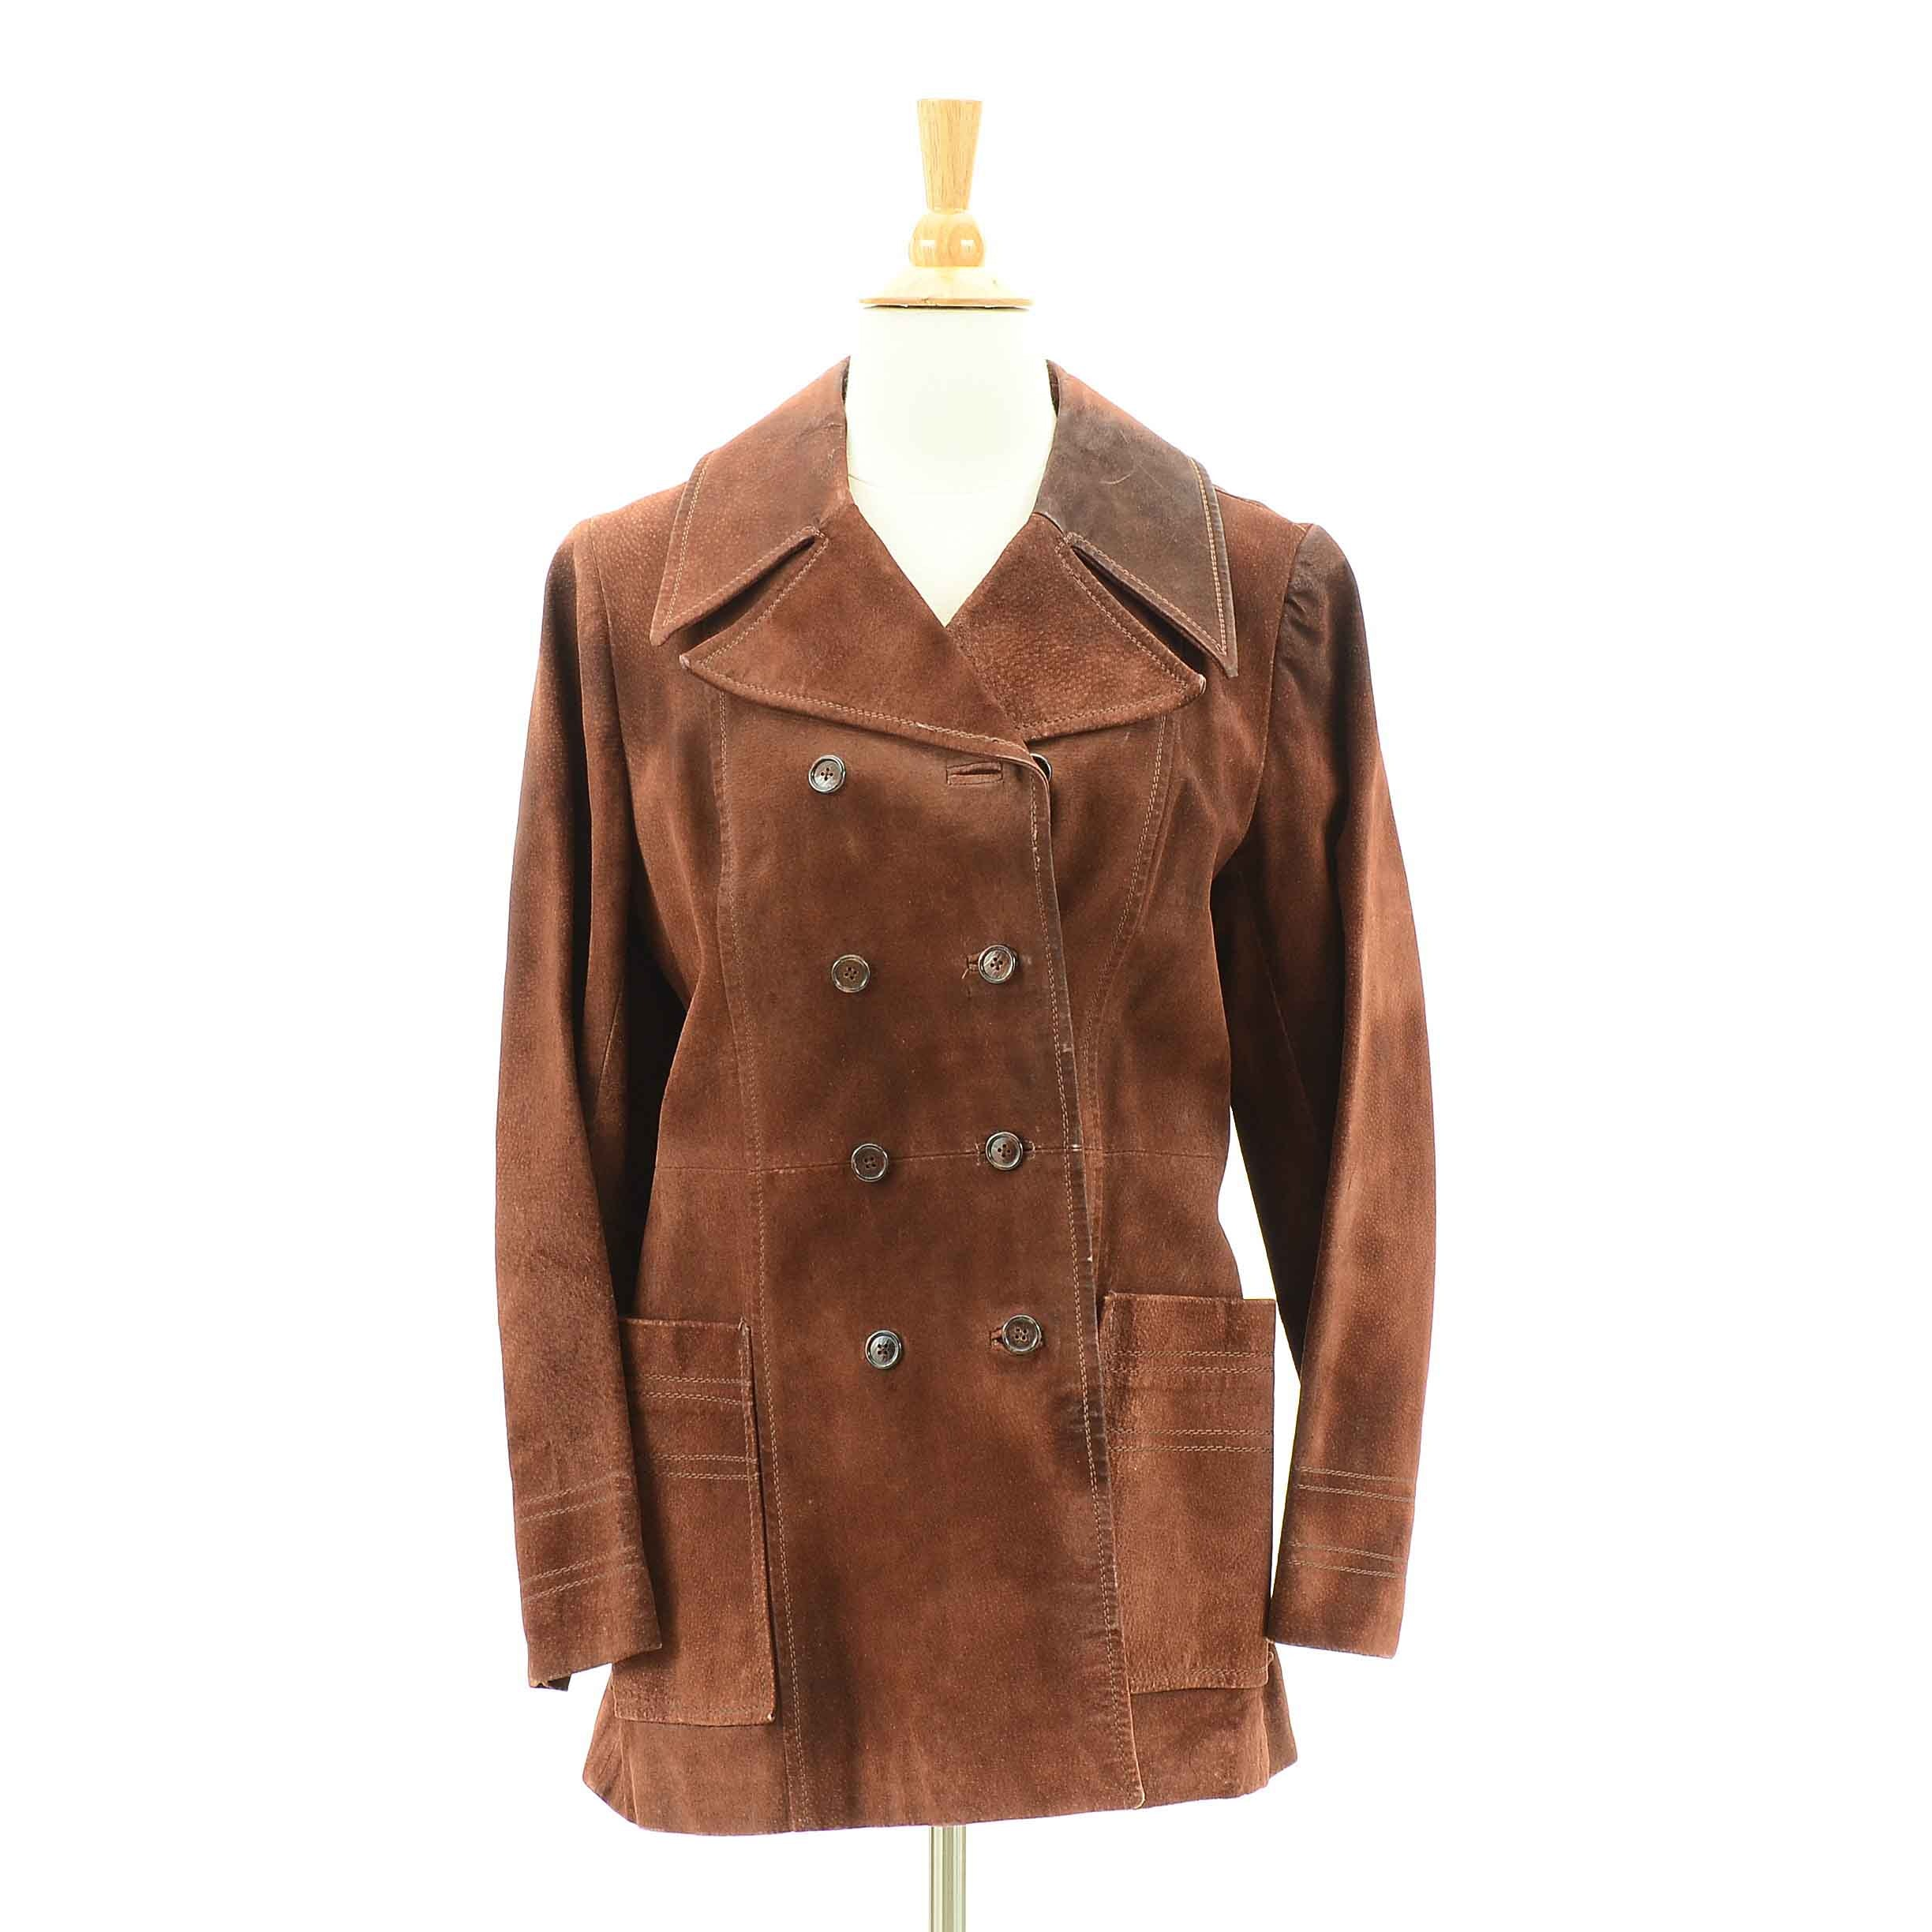 1970s Vintage Brown Suede Double-Breasted Jacket